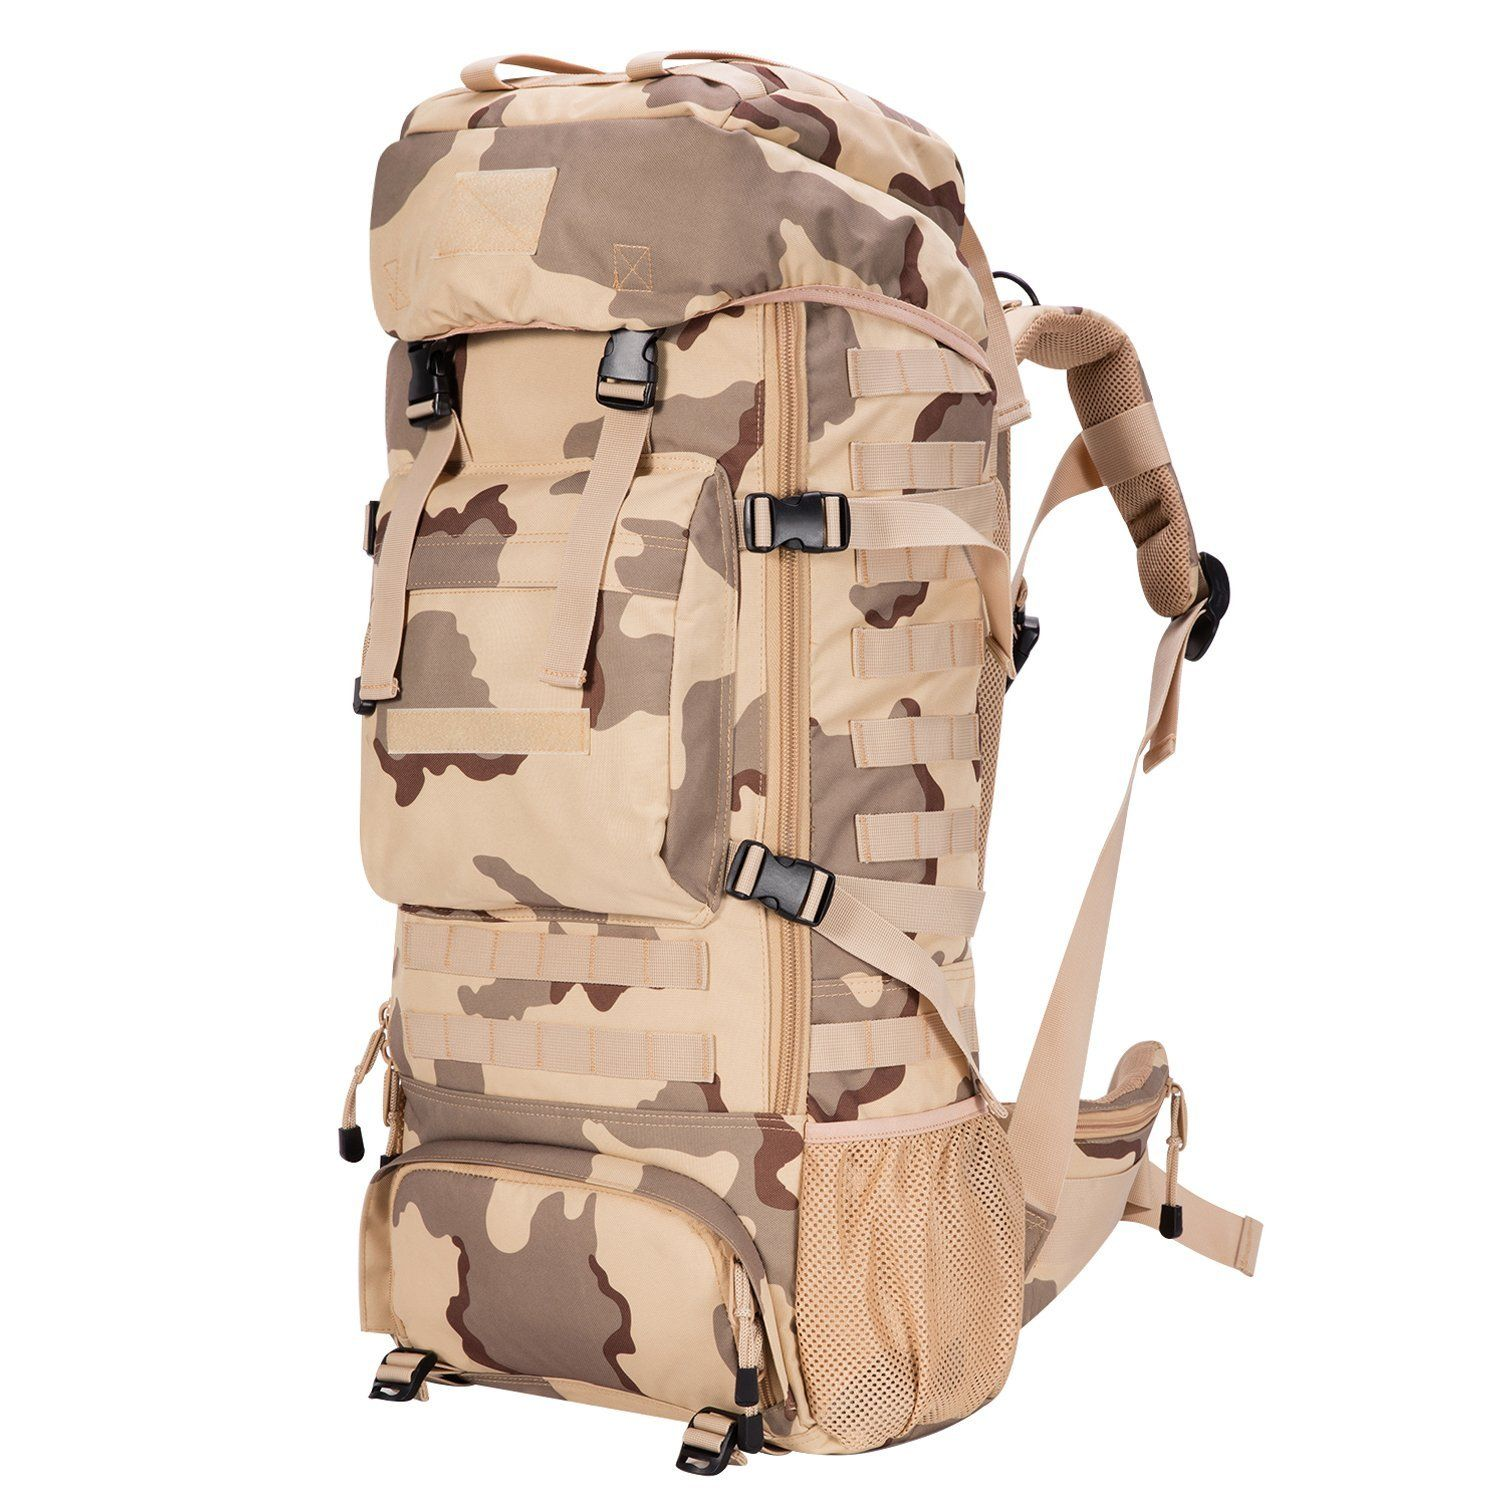 Gonex Military Molle Backpack 900D Oxford Waterproof Tactical Hiking ...